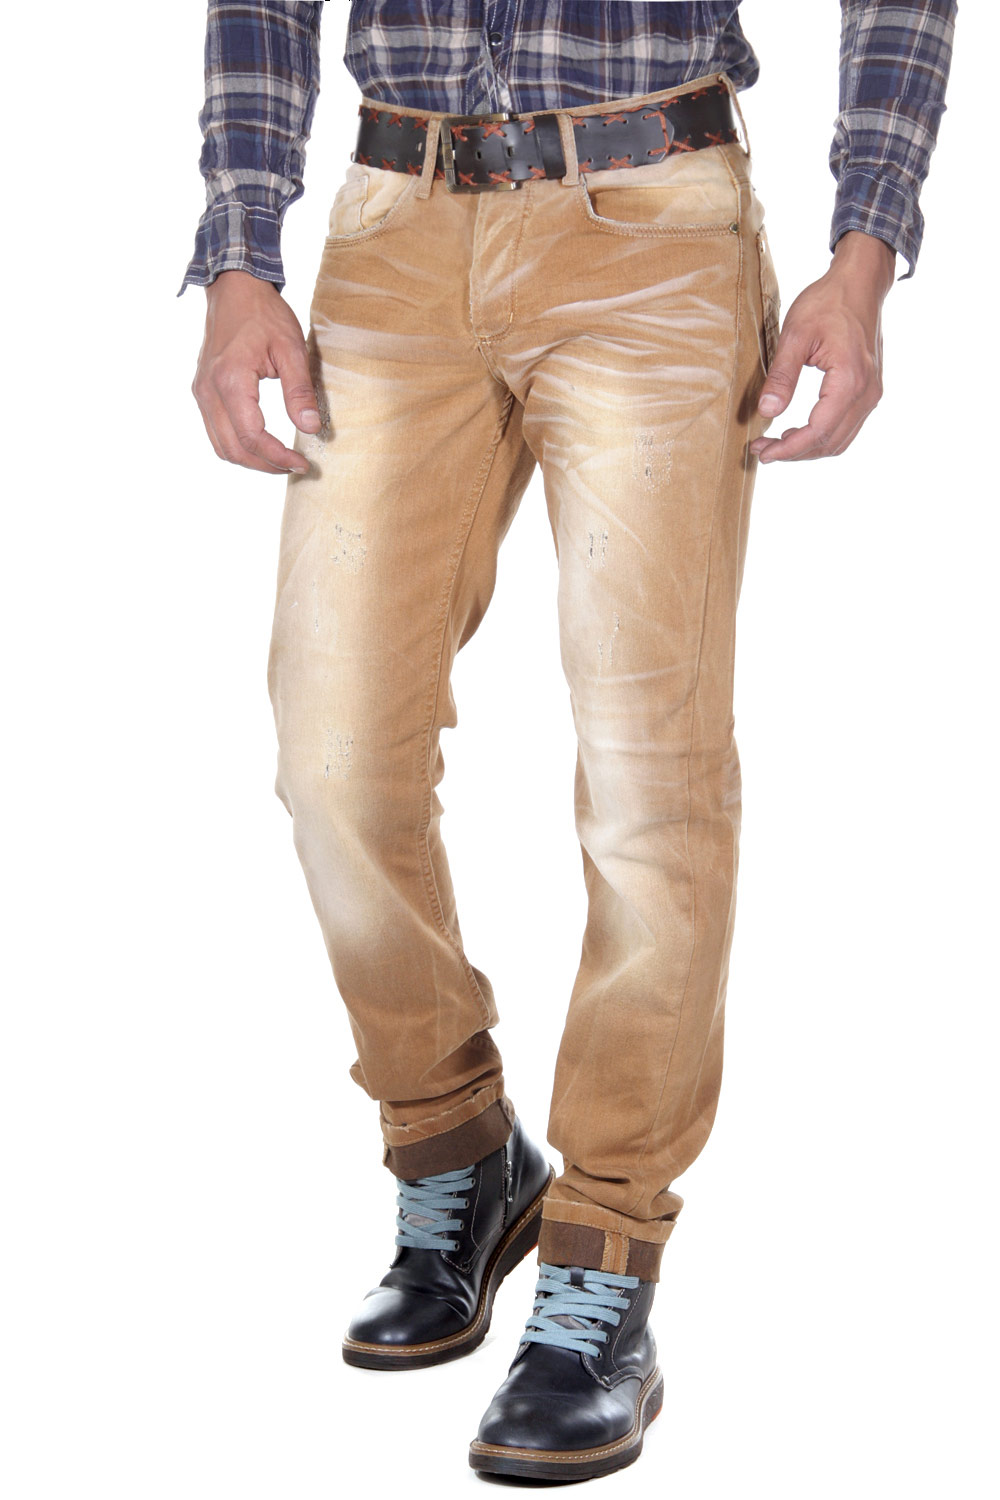 KINGZ jeans (stetch) slim fit at oboy.com